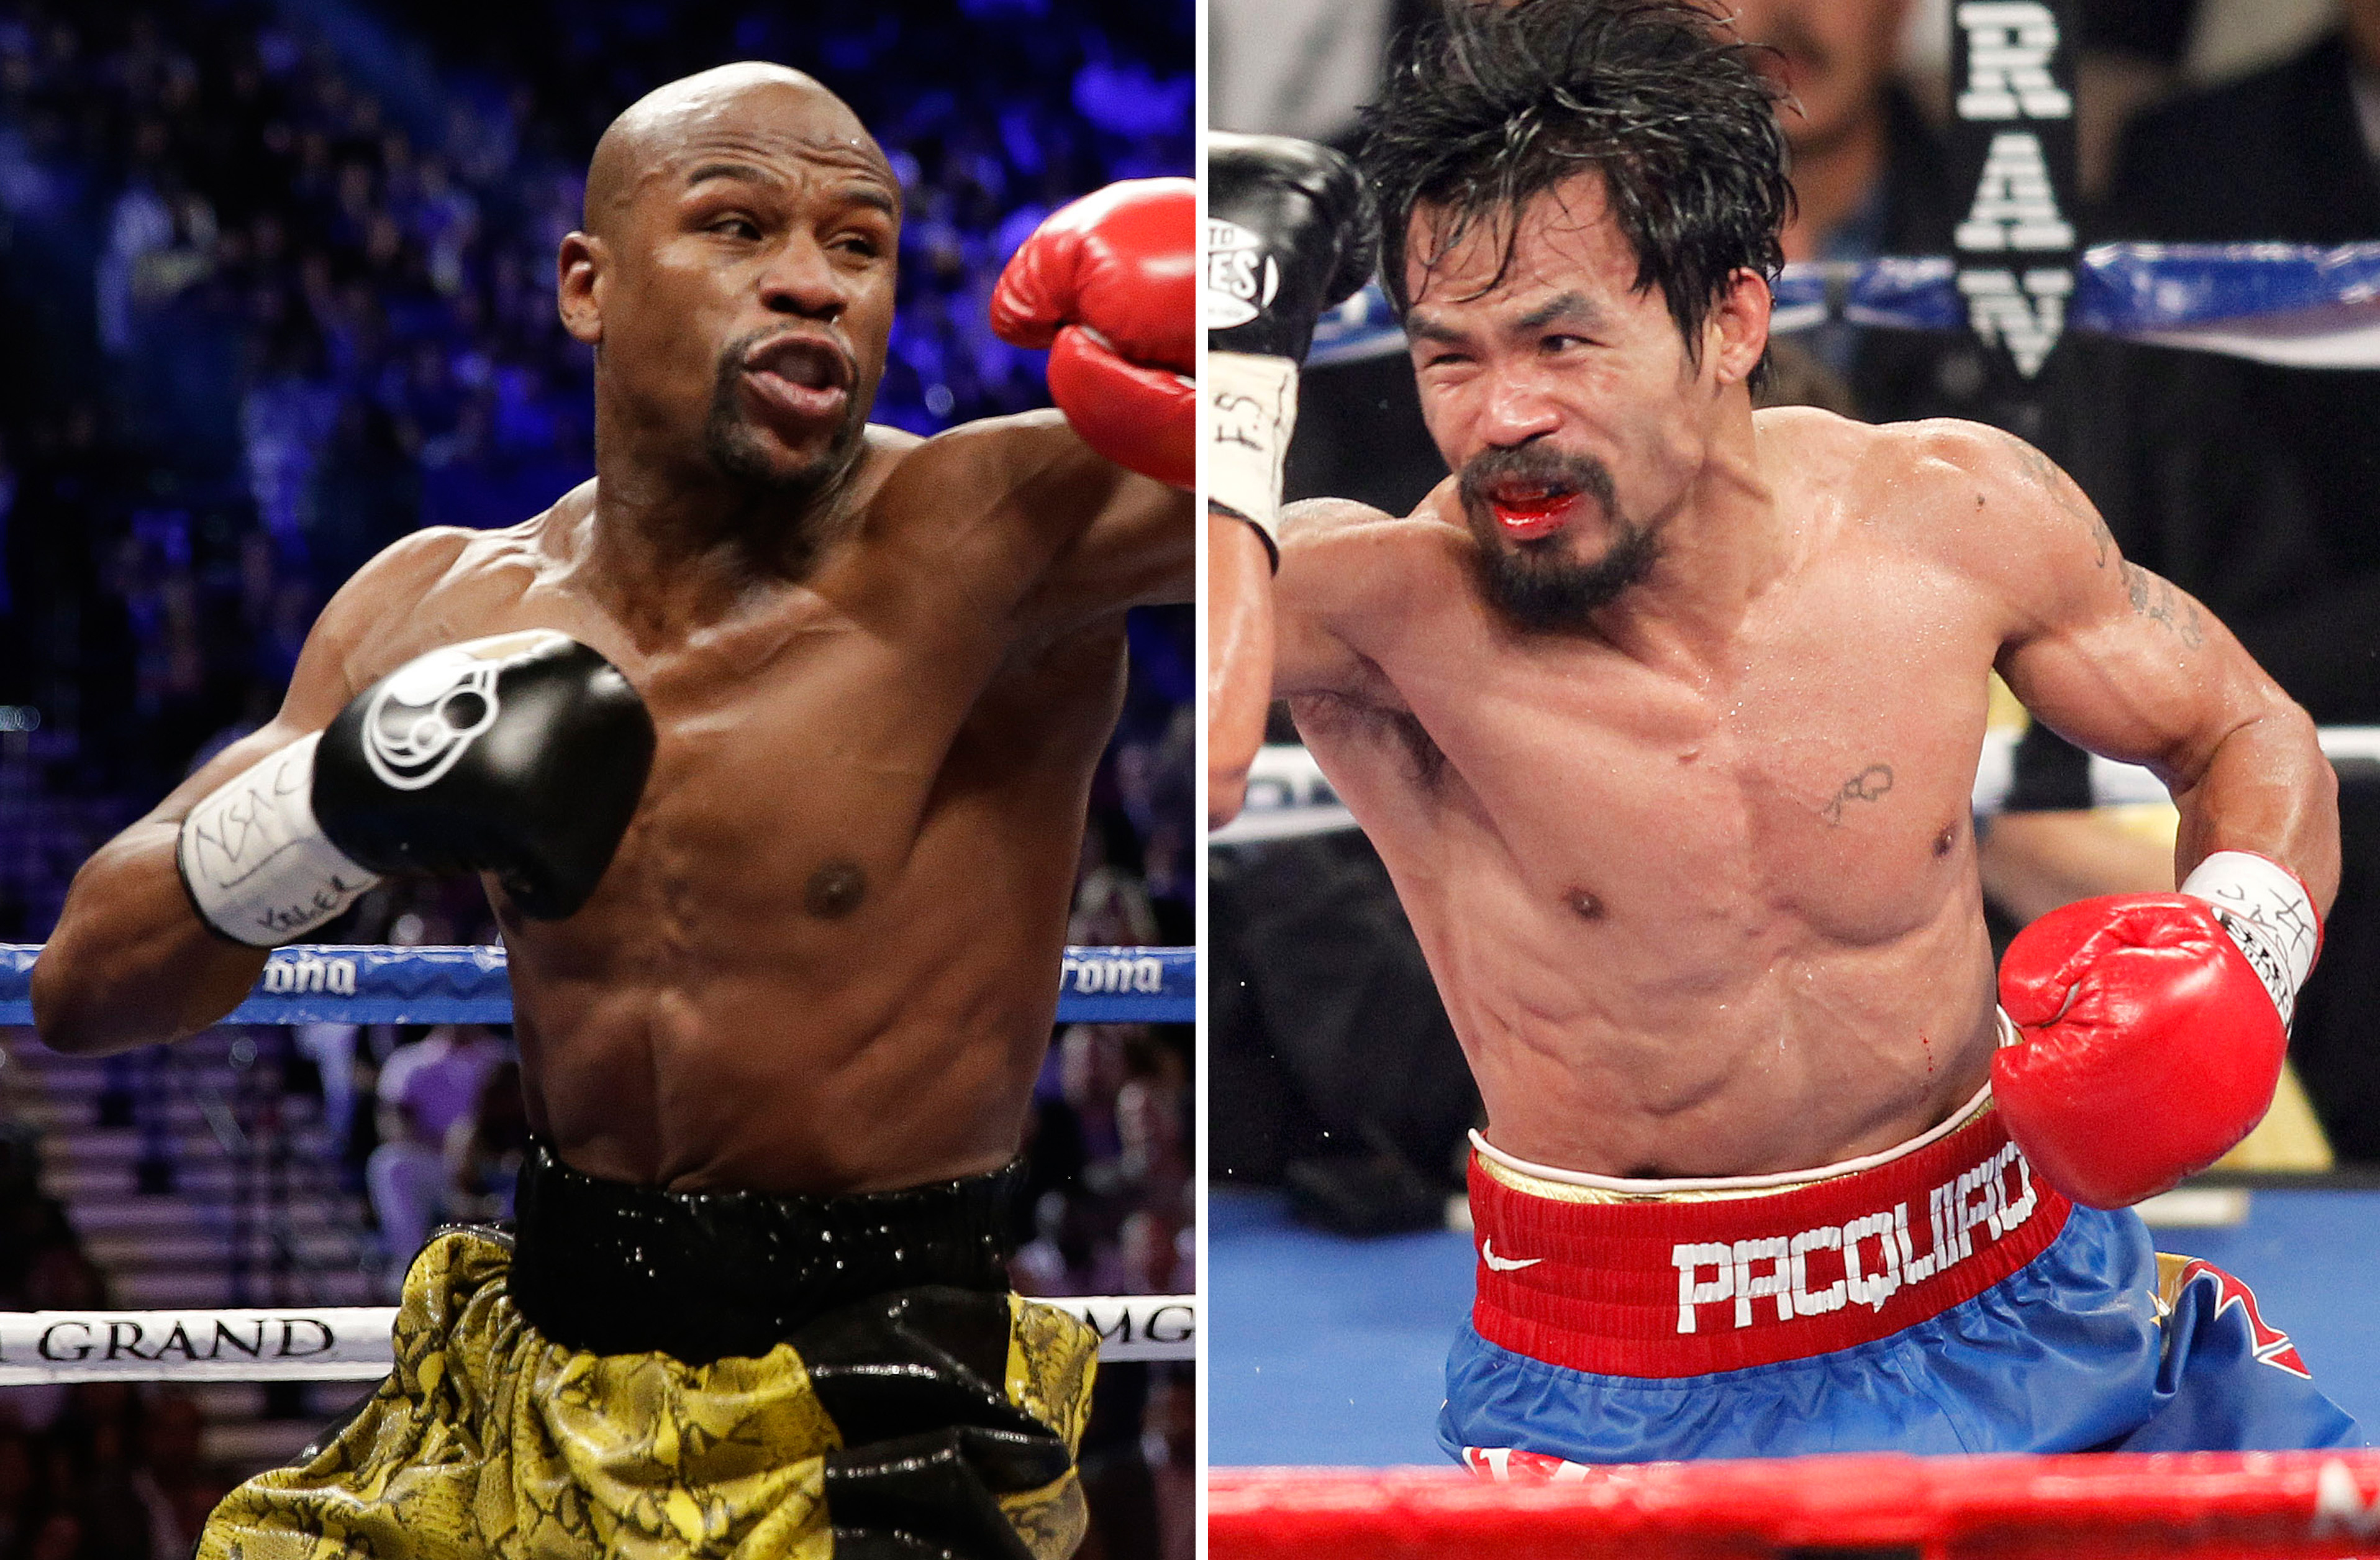 Floyd Mayweather Jr. (left) exchanges punches with Robert Guerrero (not shown) in a WBC welterweight title fight in Las Vegas on May 4, 2013. At right, in a Nov. 12, 2011 photo, Manny Pacquiao exchanges punches with Juan Manuel Marquez (not shown) during a WBO welterweight title fight in Las Vegas. Floyd Mayweather Jr. and Manny Pacquiao are about to face off at the MGM Grand in the most anticipated fight in recent times.